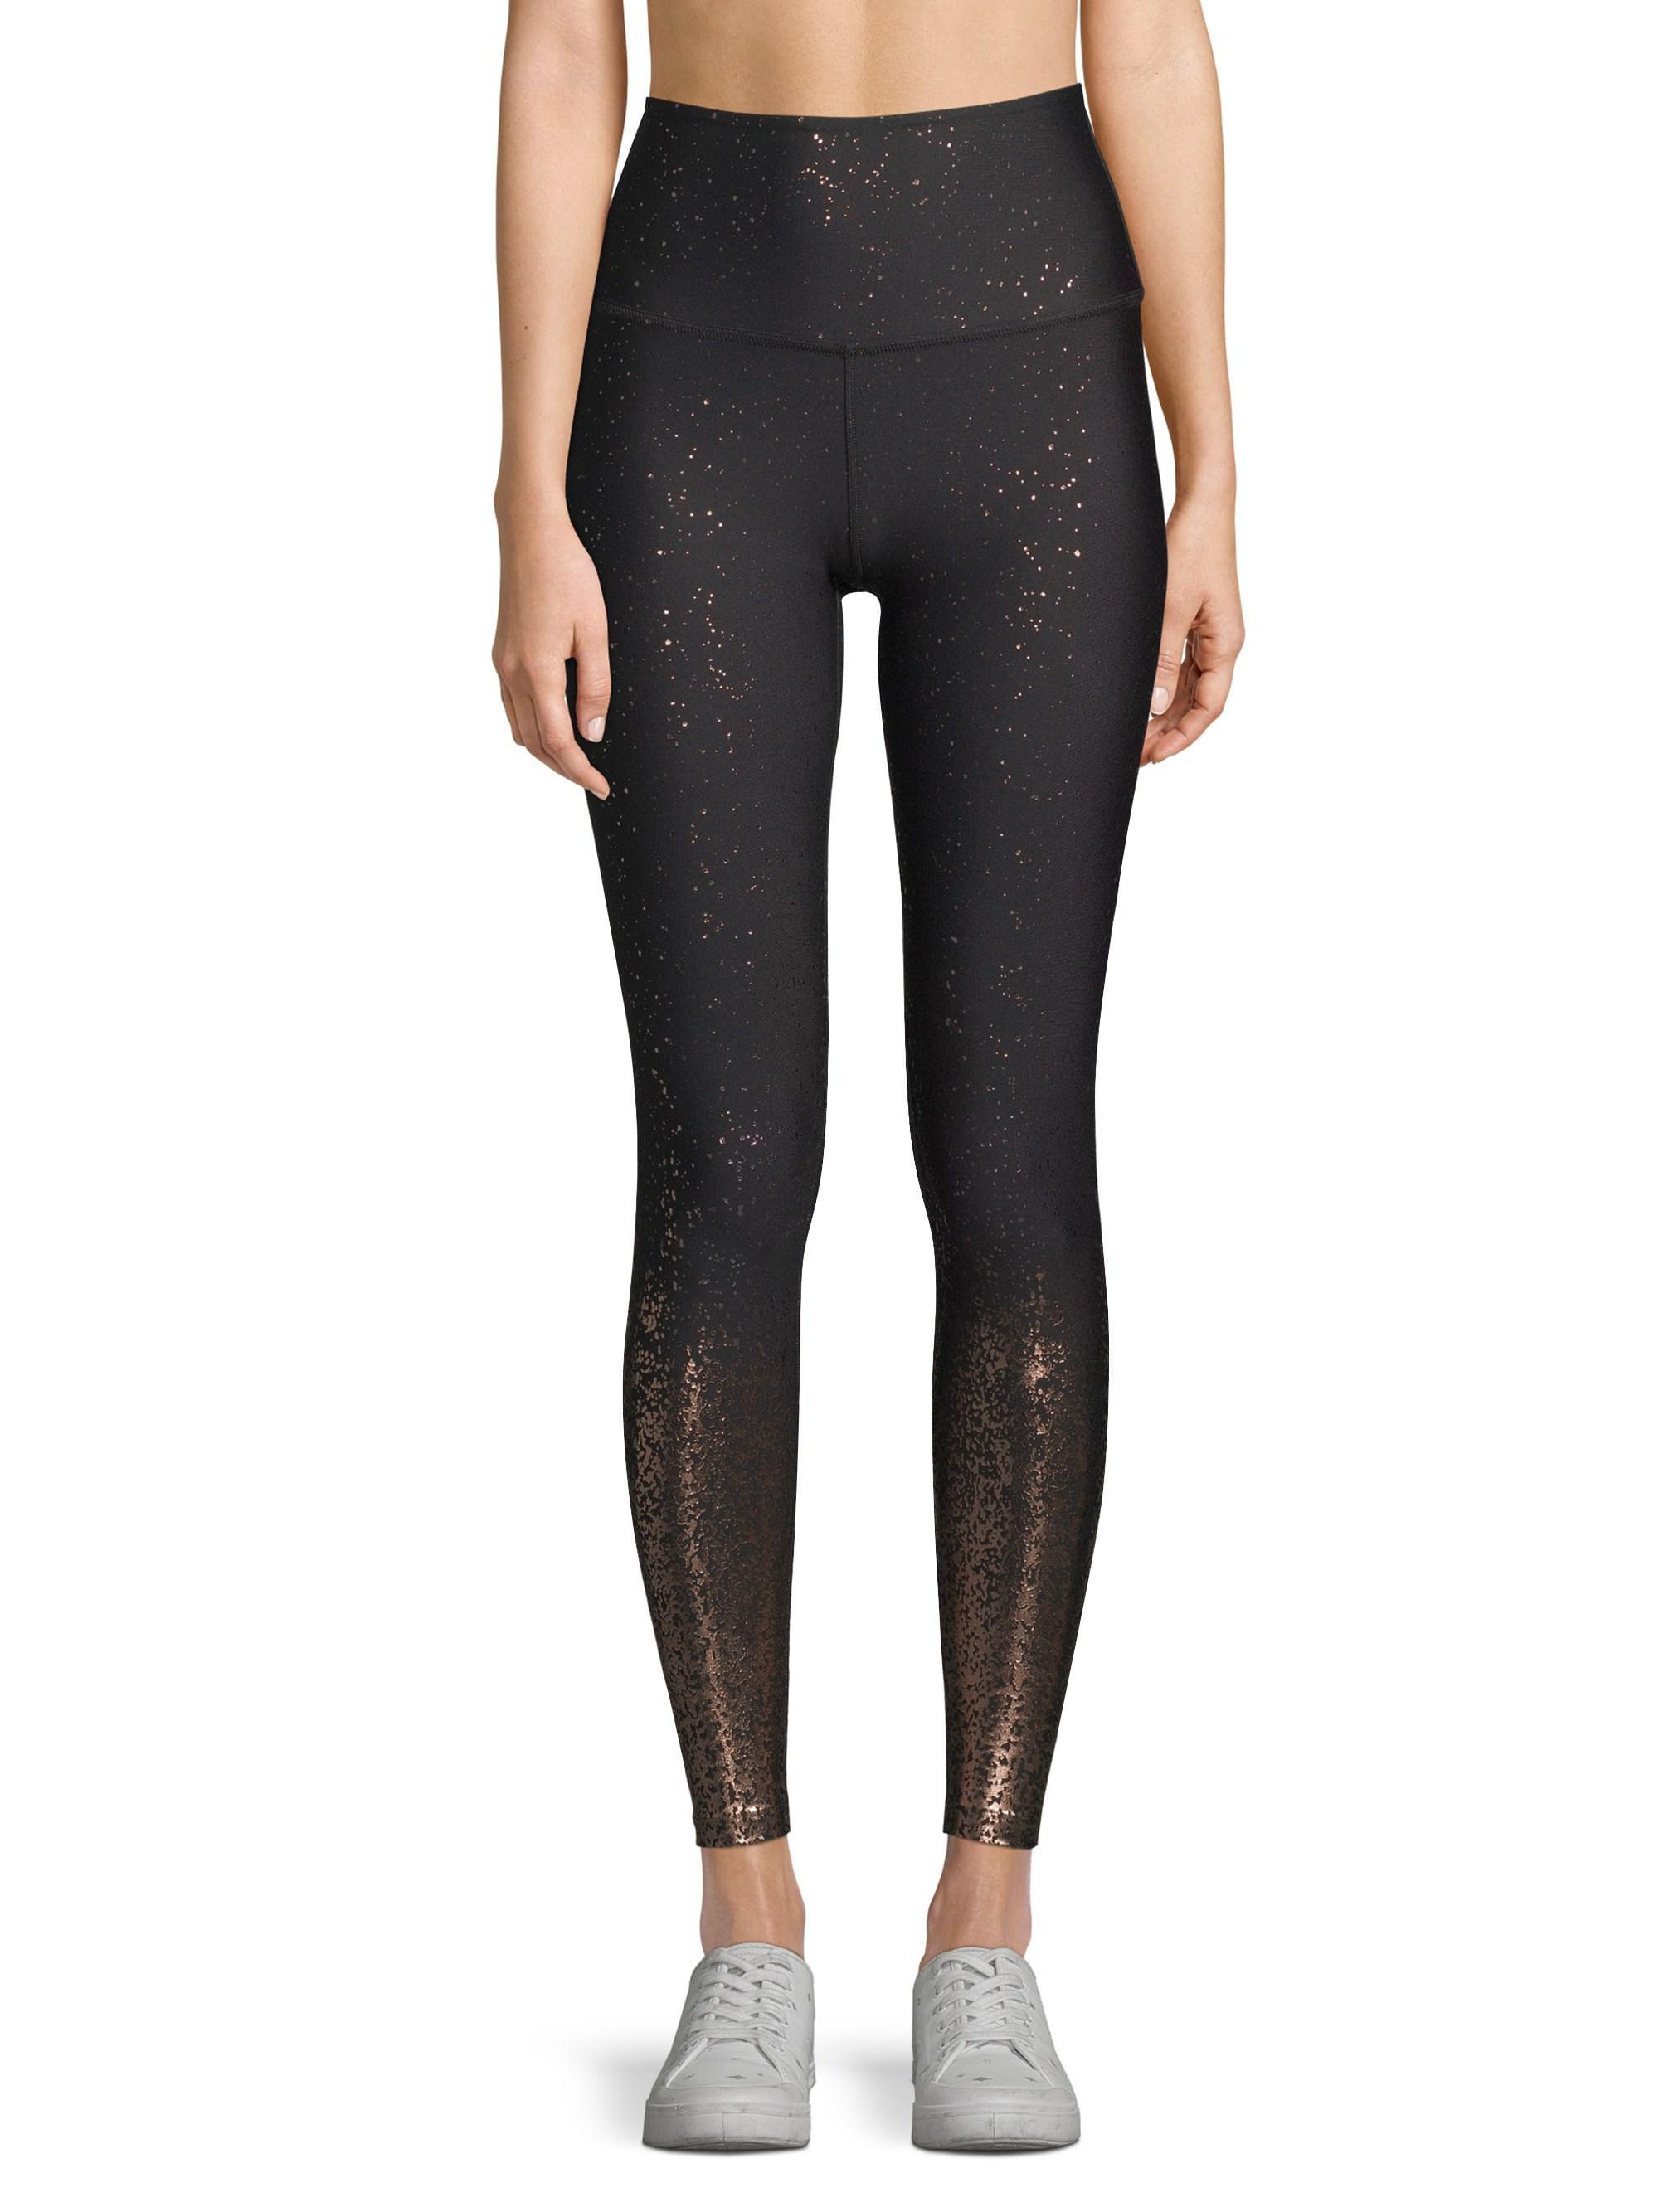 77dfd5fa1d24c Beyond Yoga Alloy Ombre Metallic High-rise Leggings in Black - Lyst